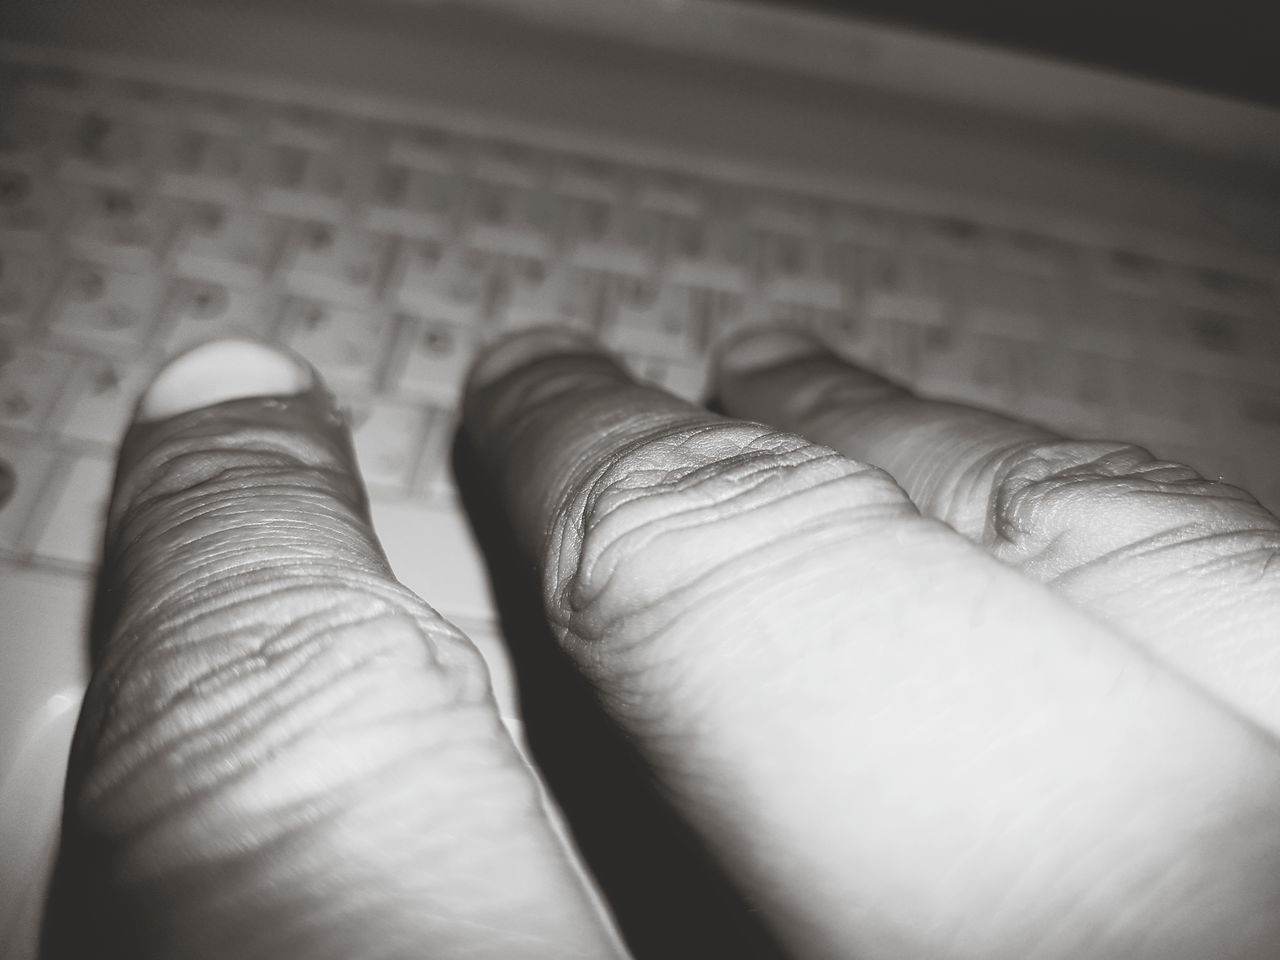 Finger Fingers Keyboard Computer Vintage Mad Scientist Deepweb Scary to Torture Wierd Reaching Out